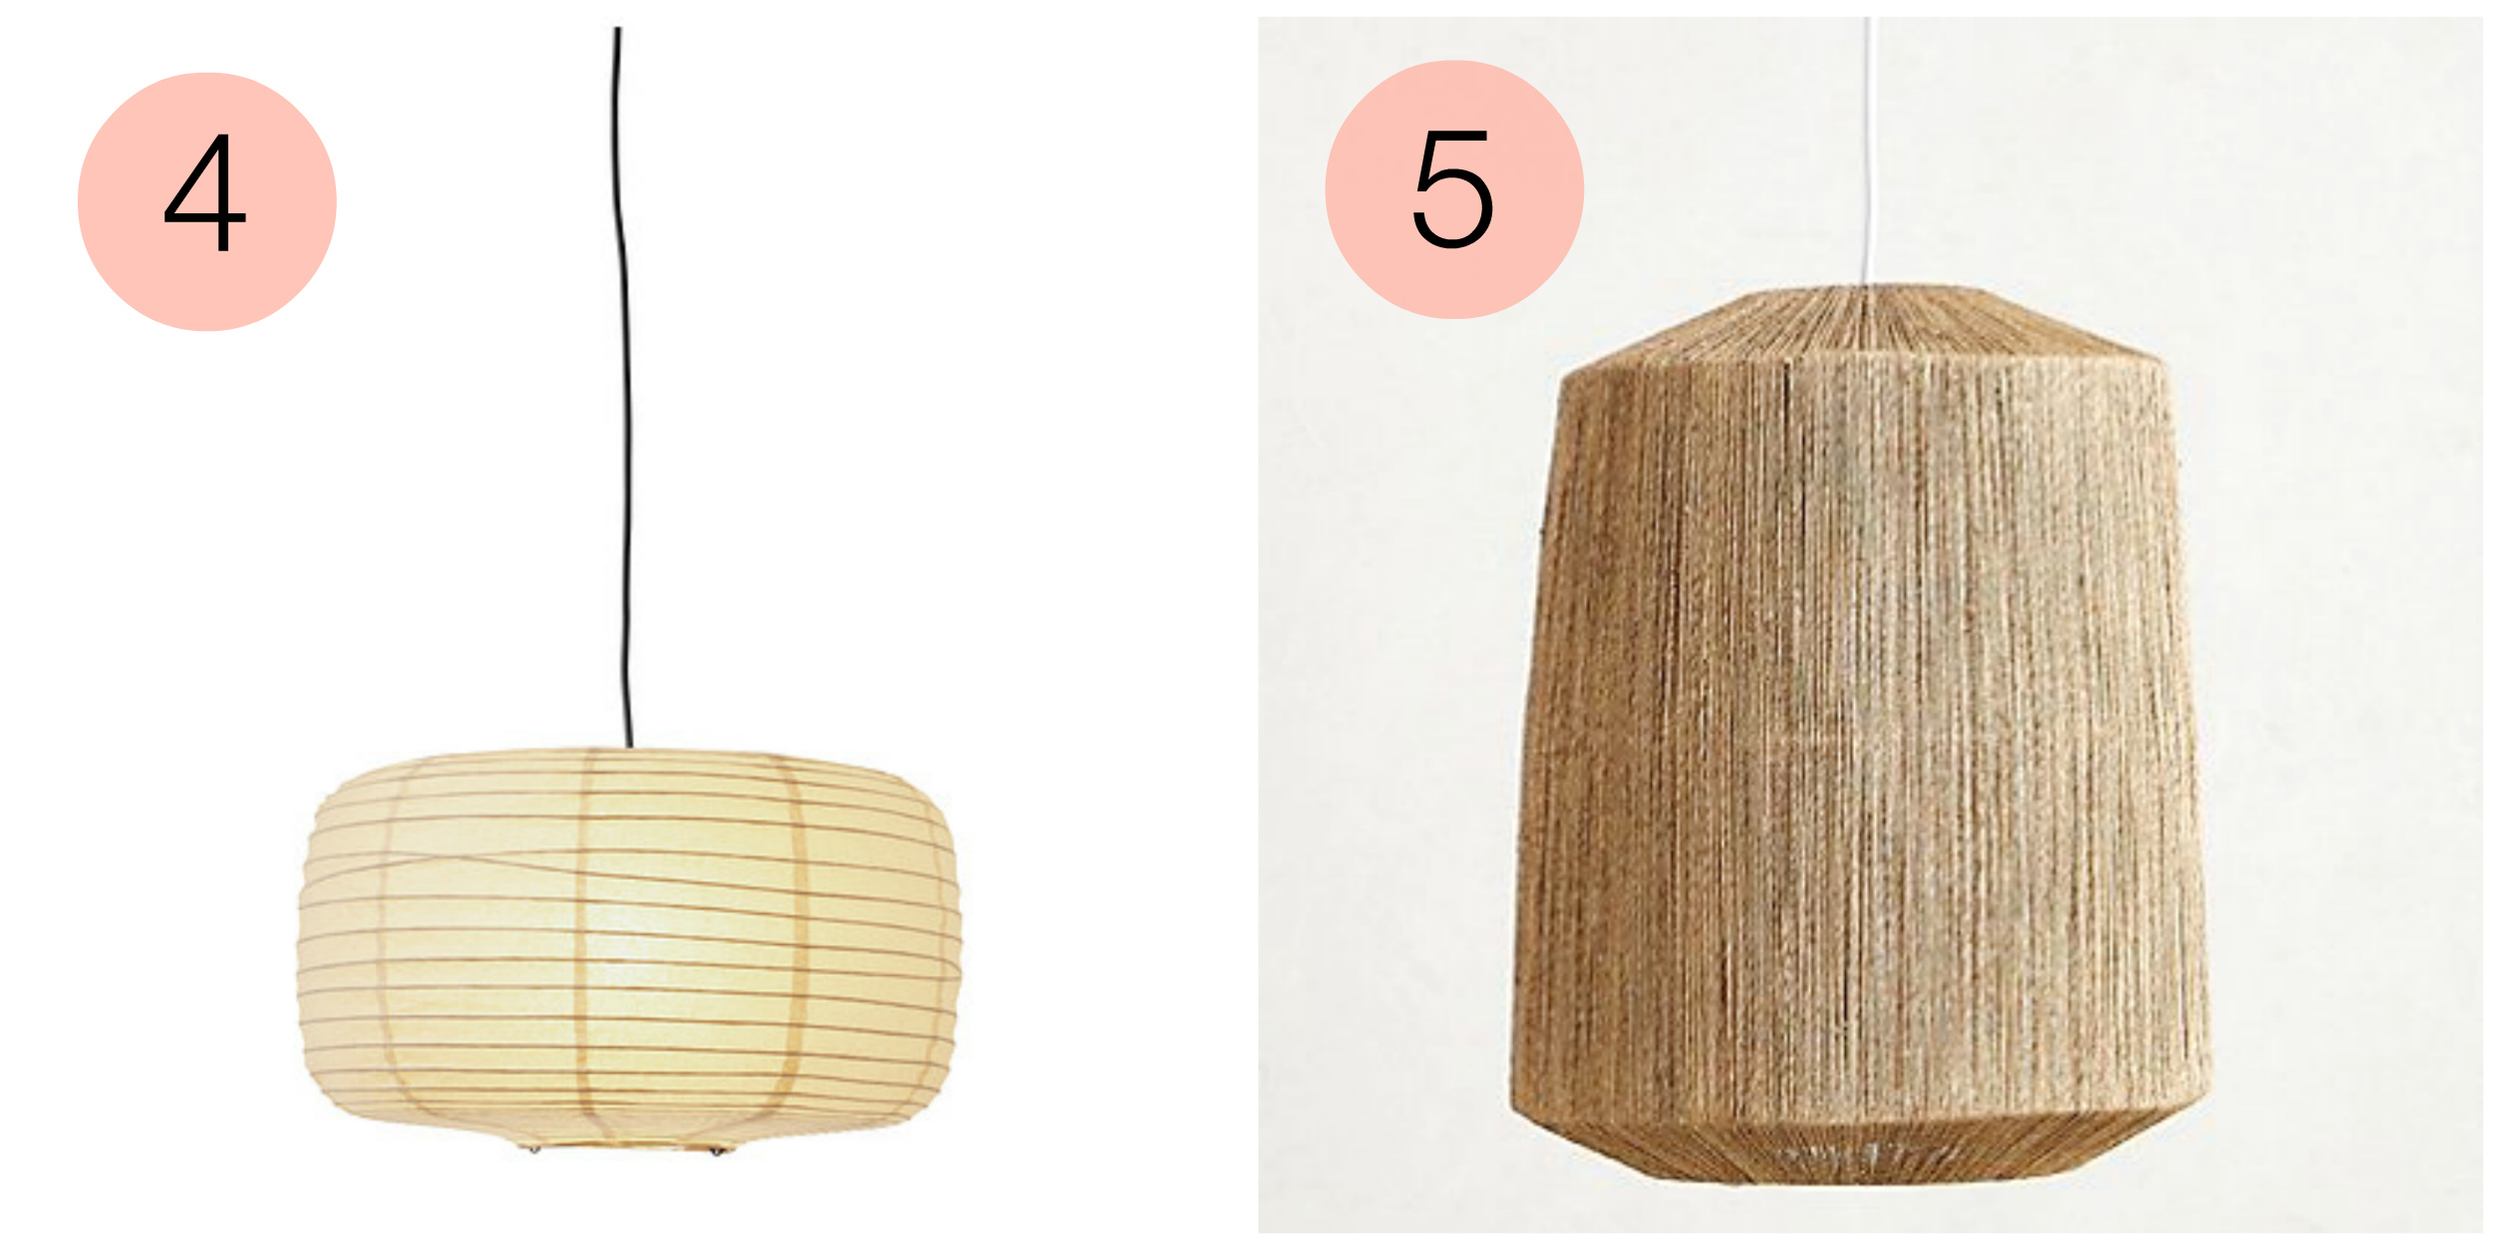 Domsjo Sink Non Ikea Cabinet ~ IKEA lamps ideas for refreshing and refurbishing — I Like That Lamp